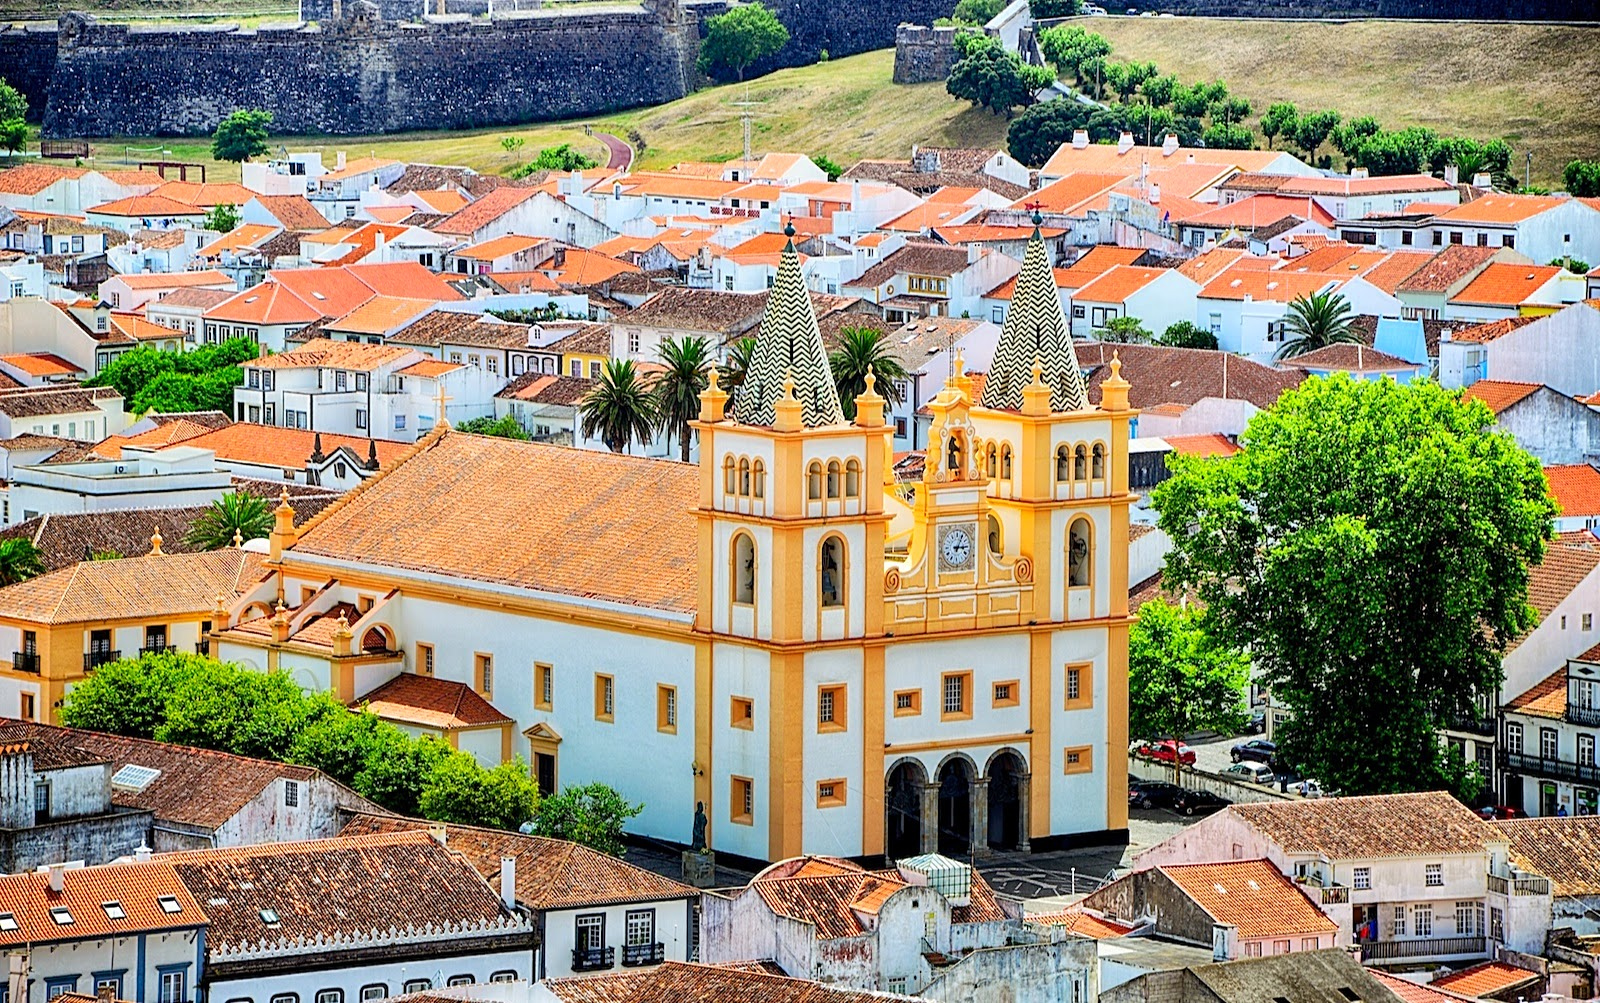 Sé Cathedral of Angra do Heroísmo, Terceira Island, Azores, Portugal